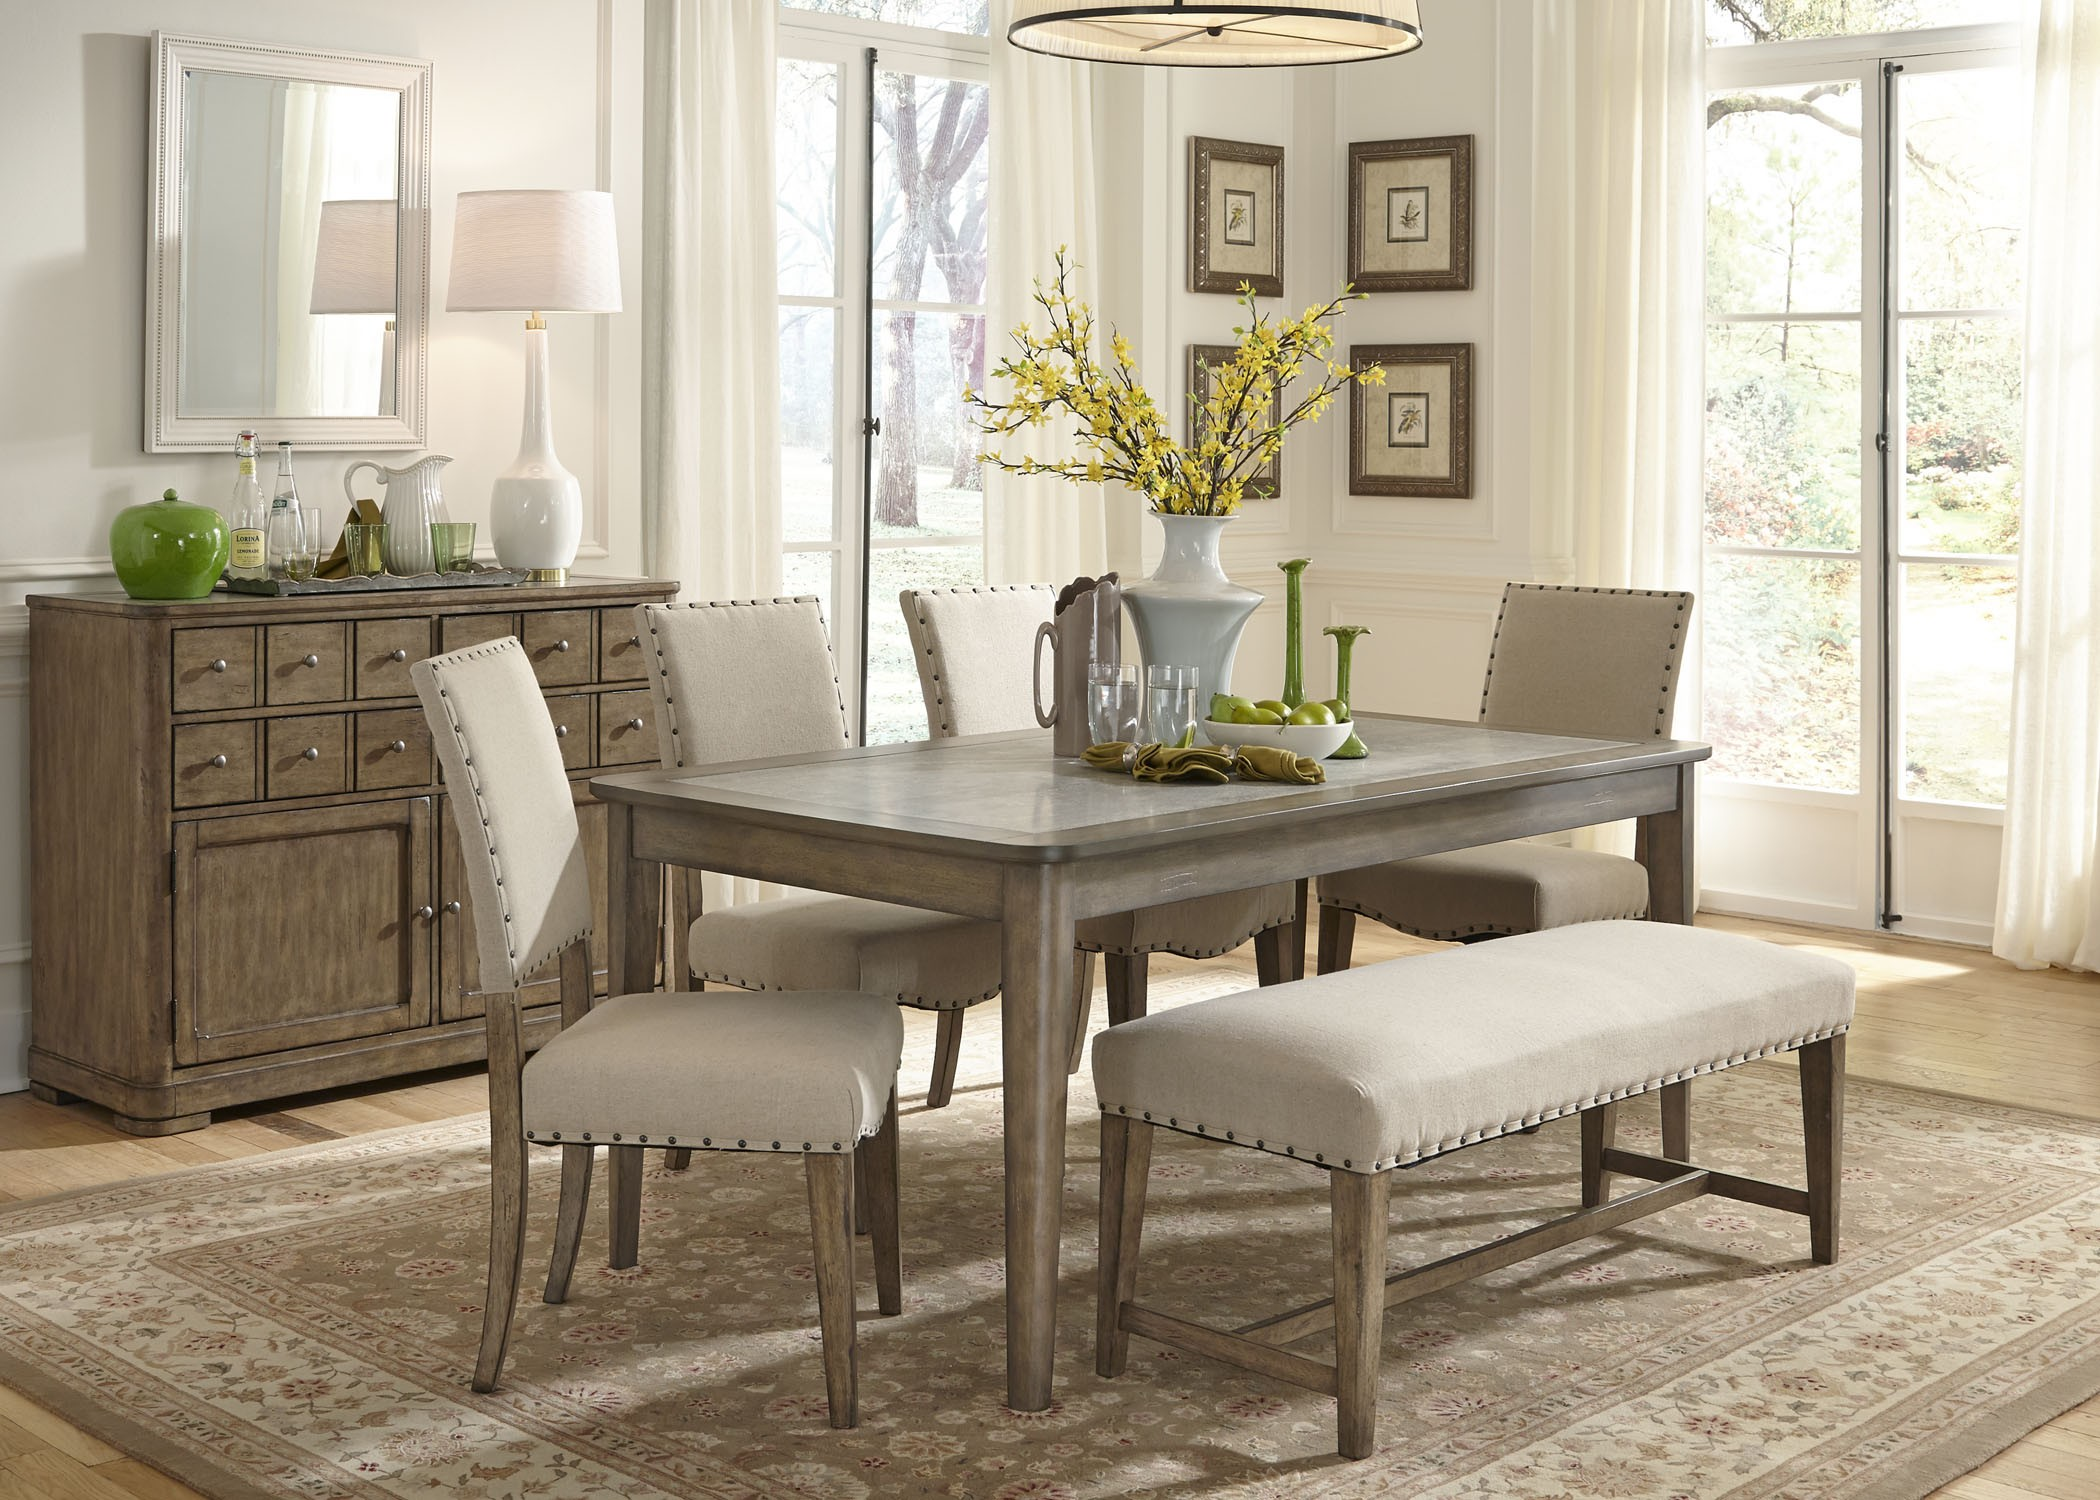 dining room table with bench and chairs ... dining room furniture tables with storage benches painting table RTCARHN